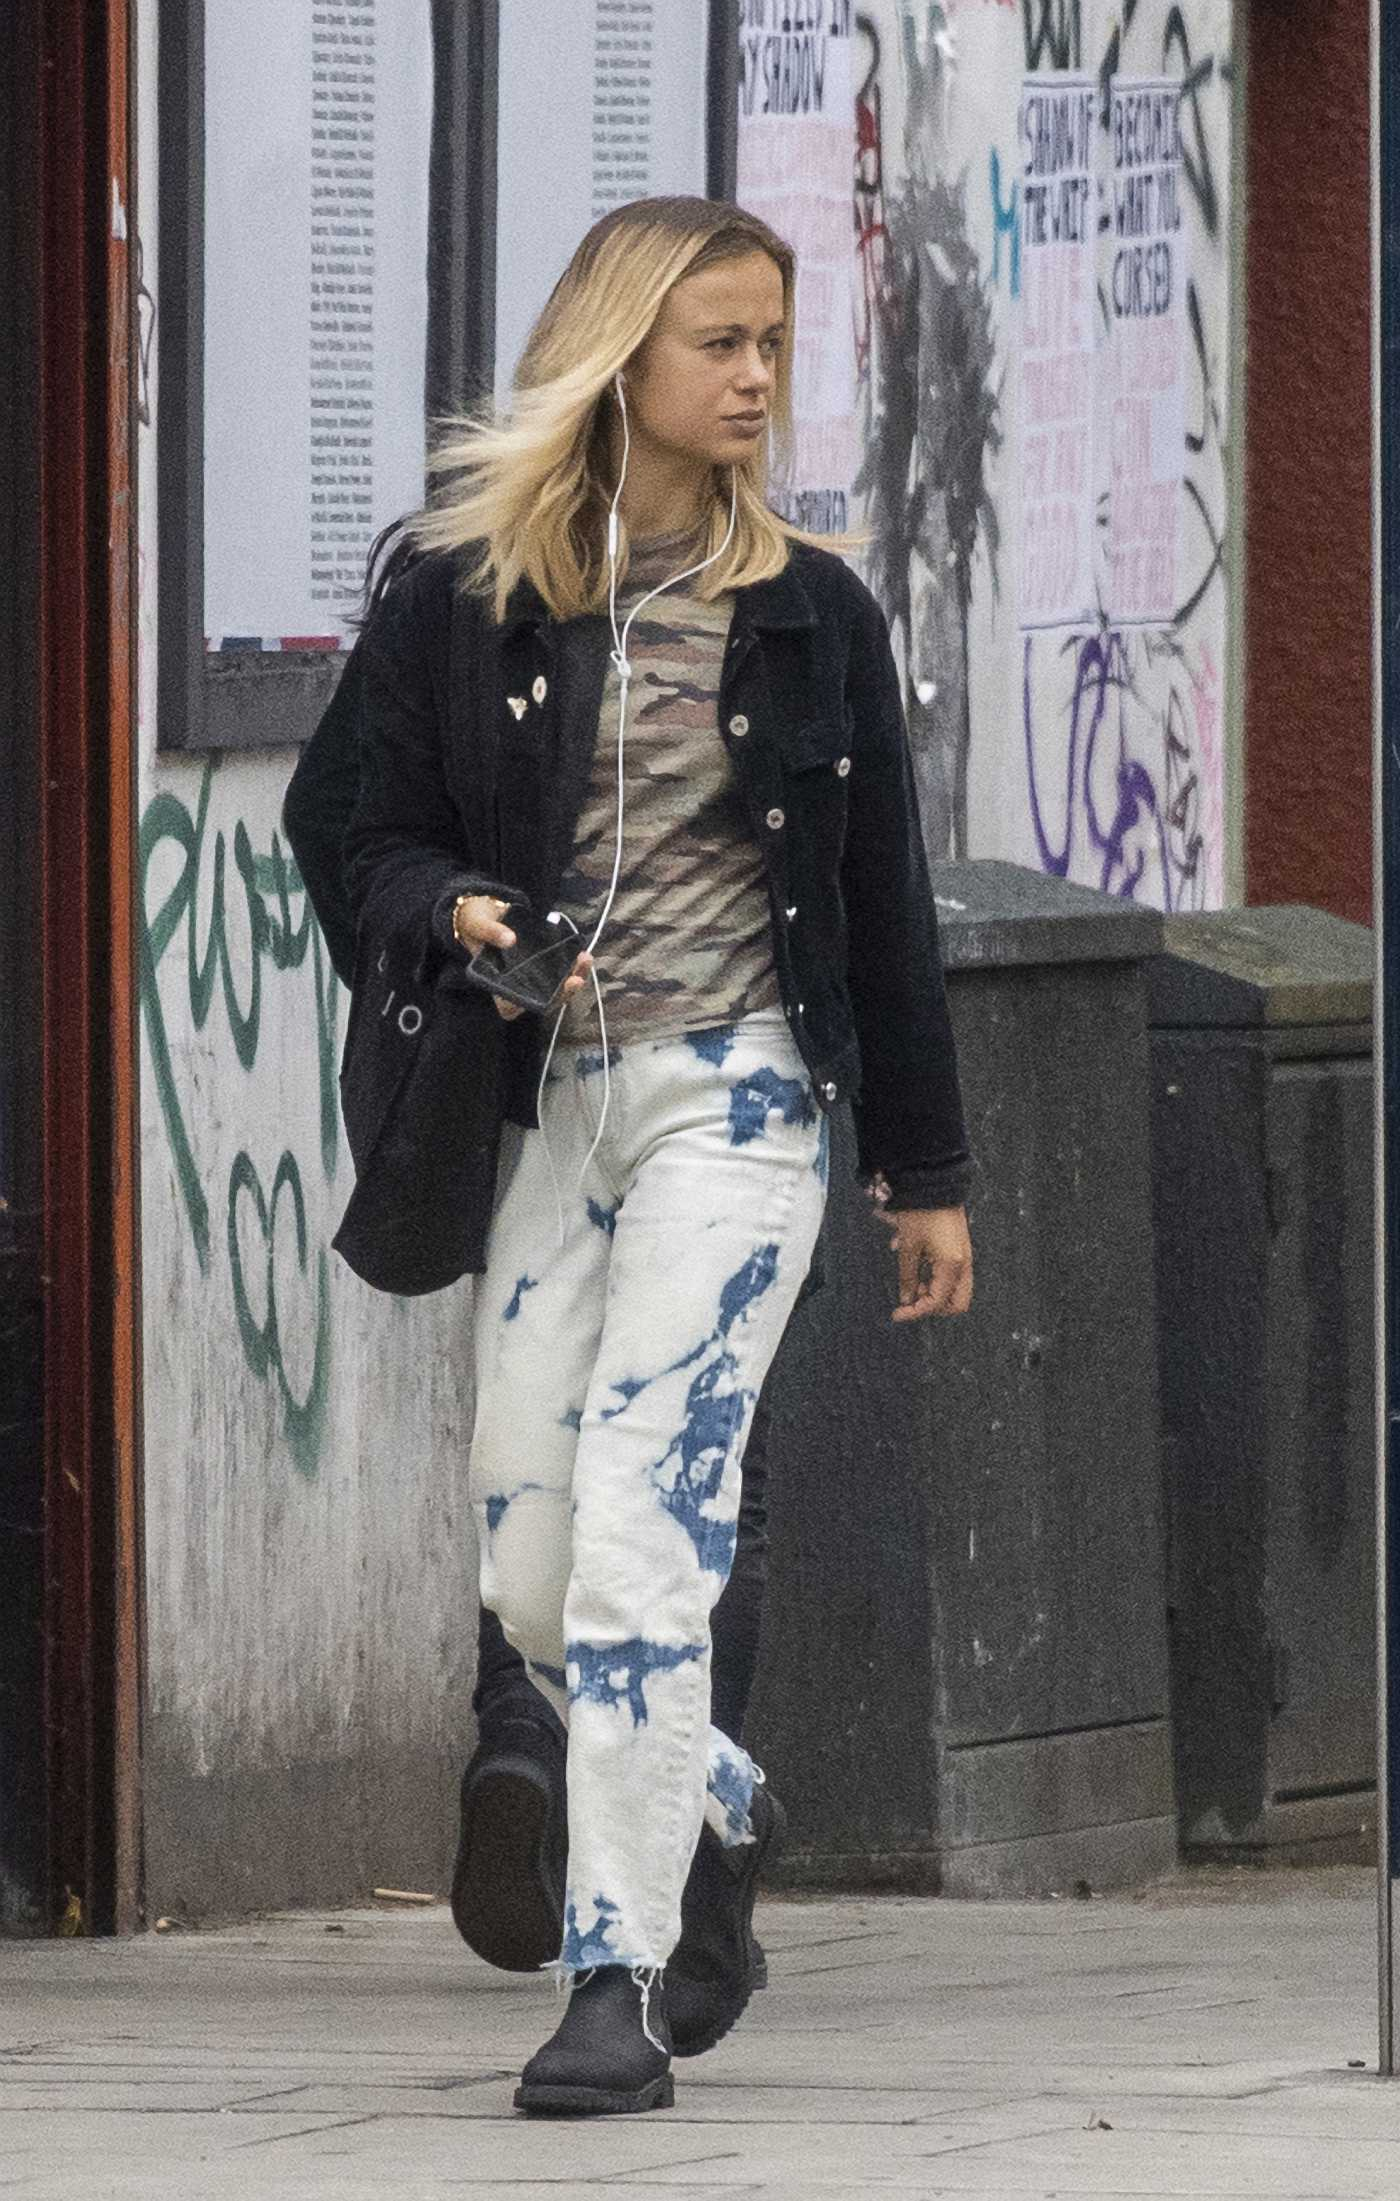 Lady Amelia Windsor in a Black Jacket Was Seen Out in London 06/30/2020